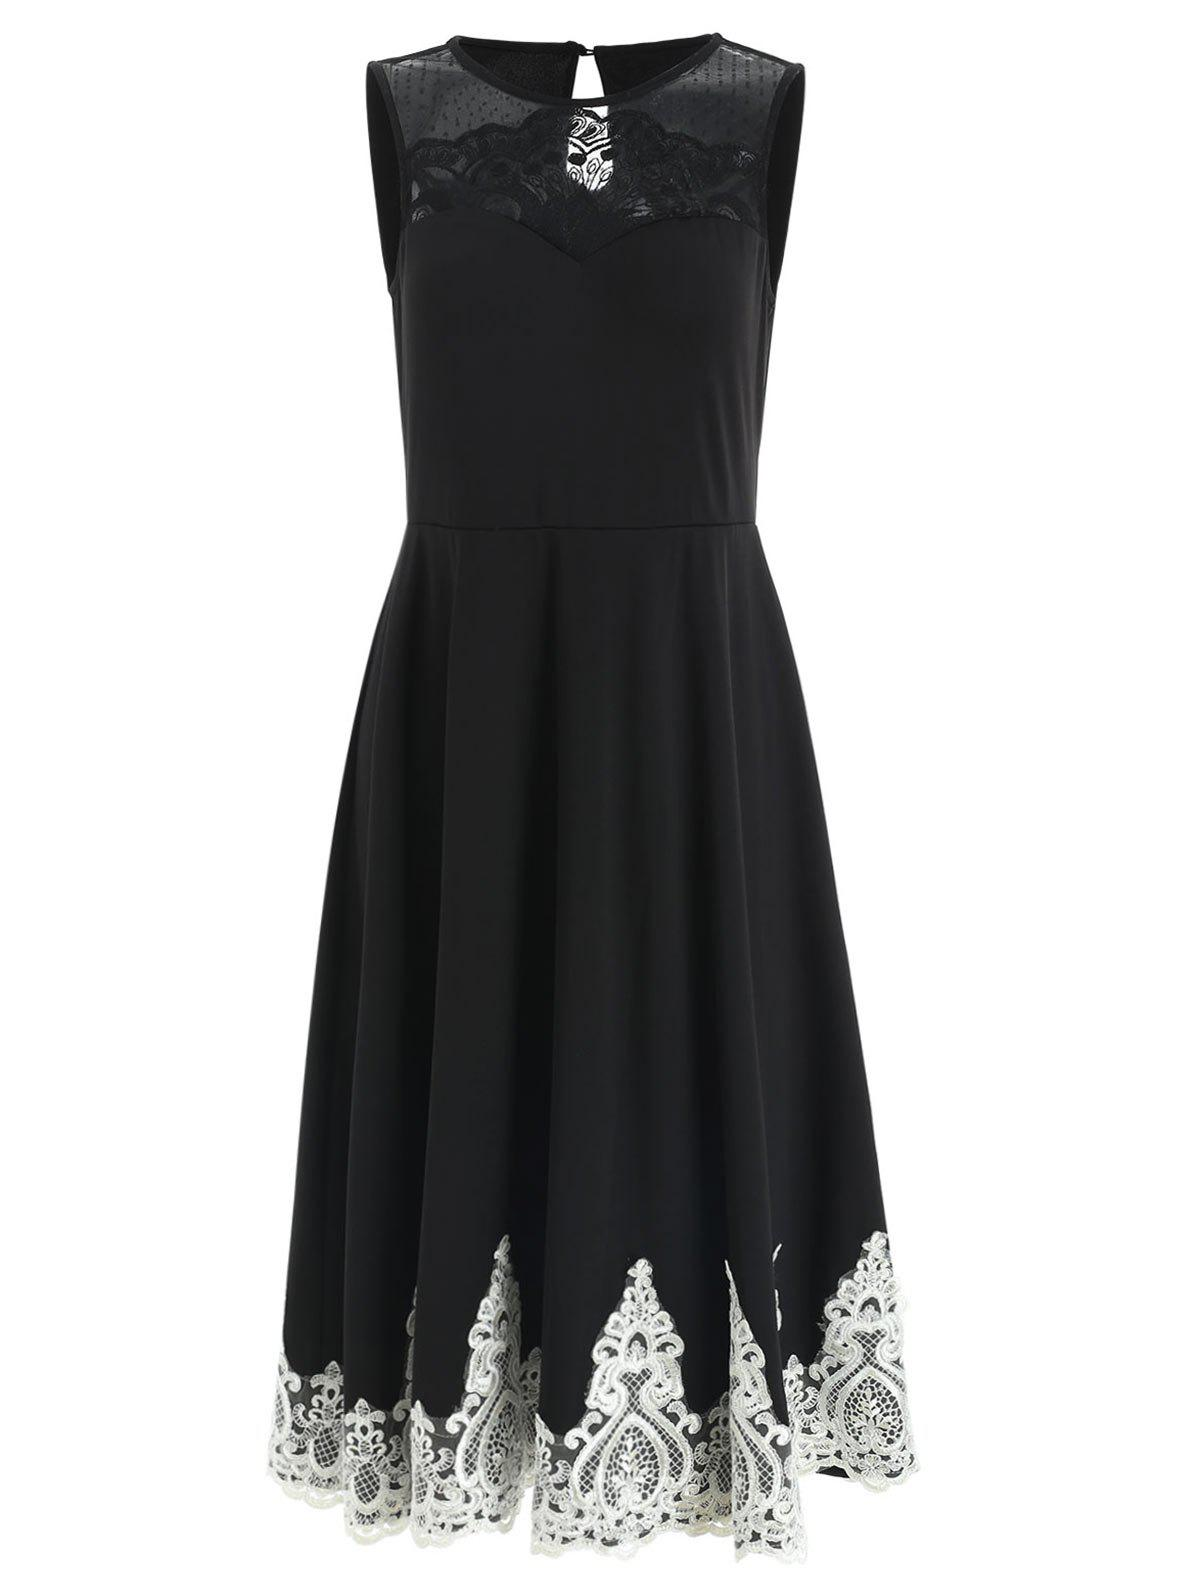 Online Lace Panel Sleeveless Fit and Flare Dress